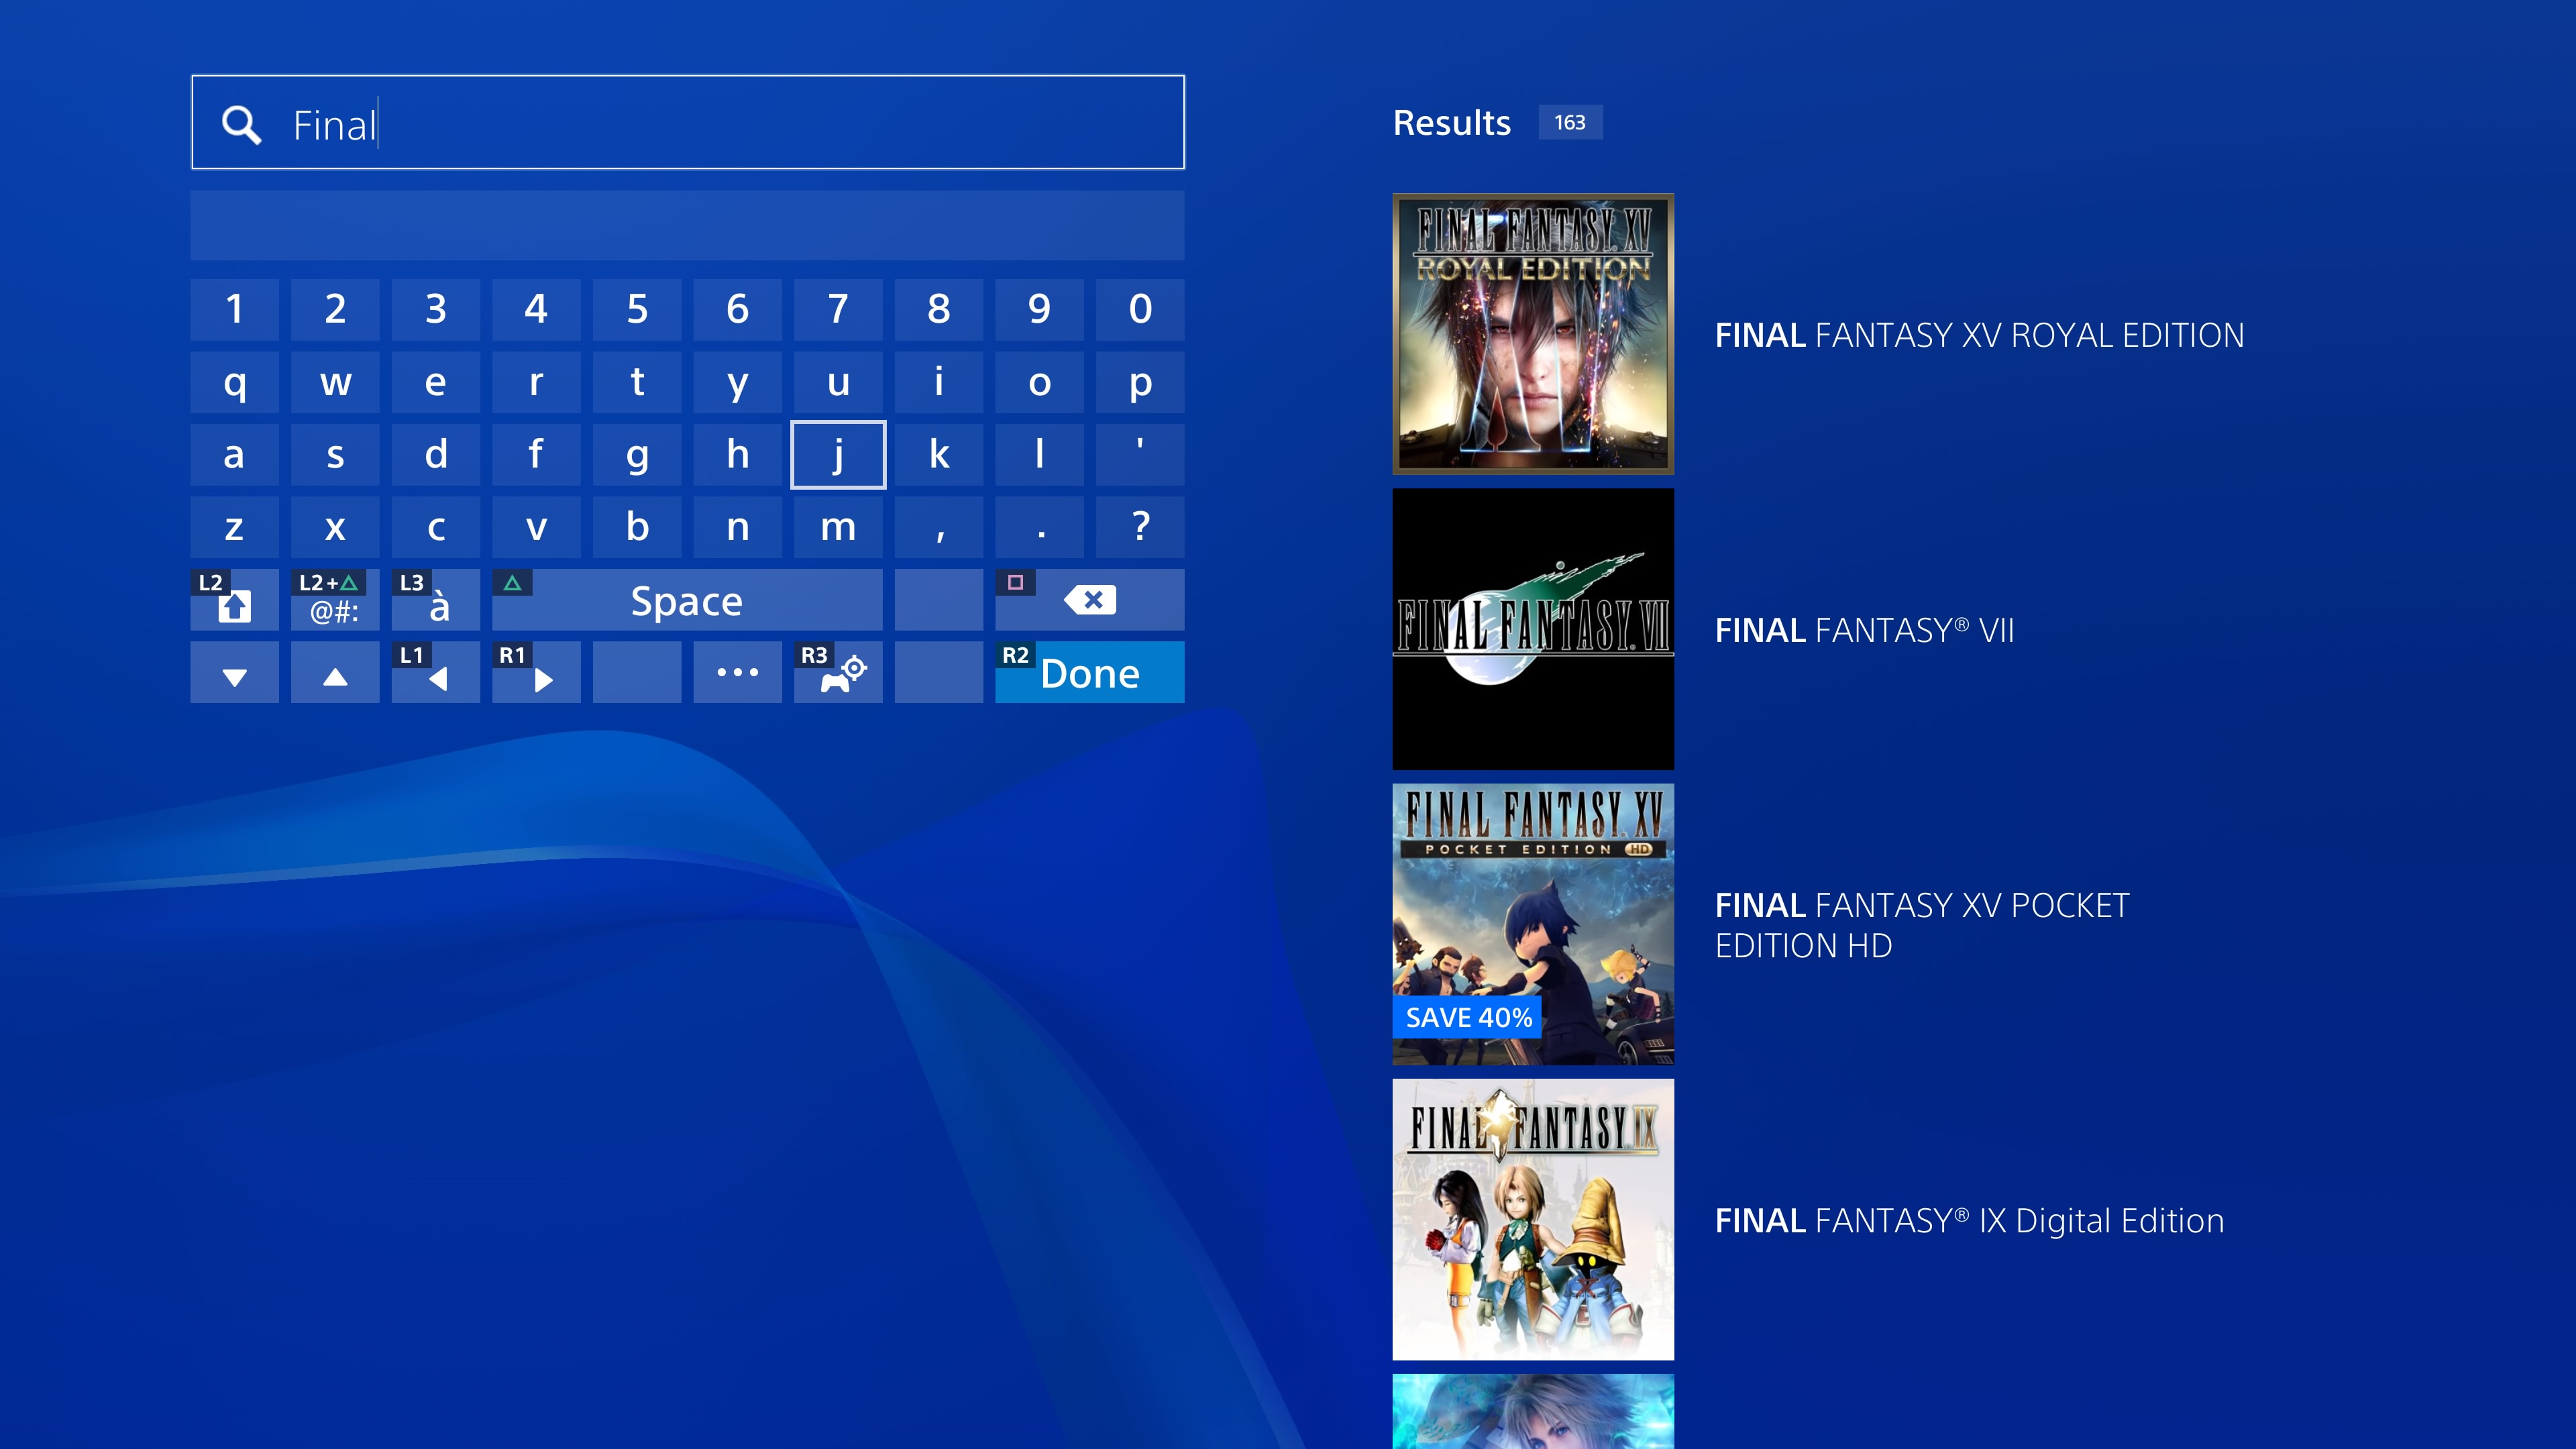 PS4 Owners Feel Trolled By The New 6 0 Update | Kotaku Australia